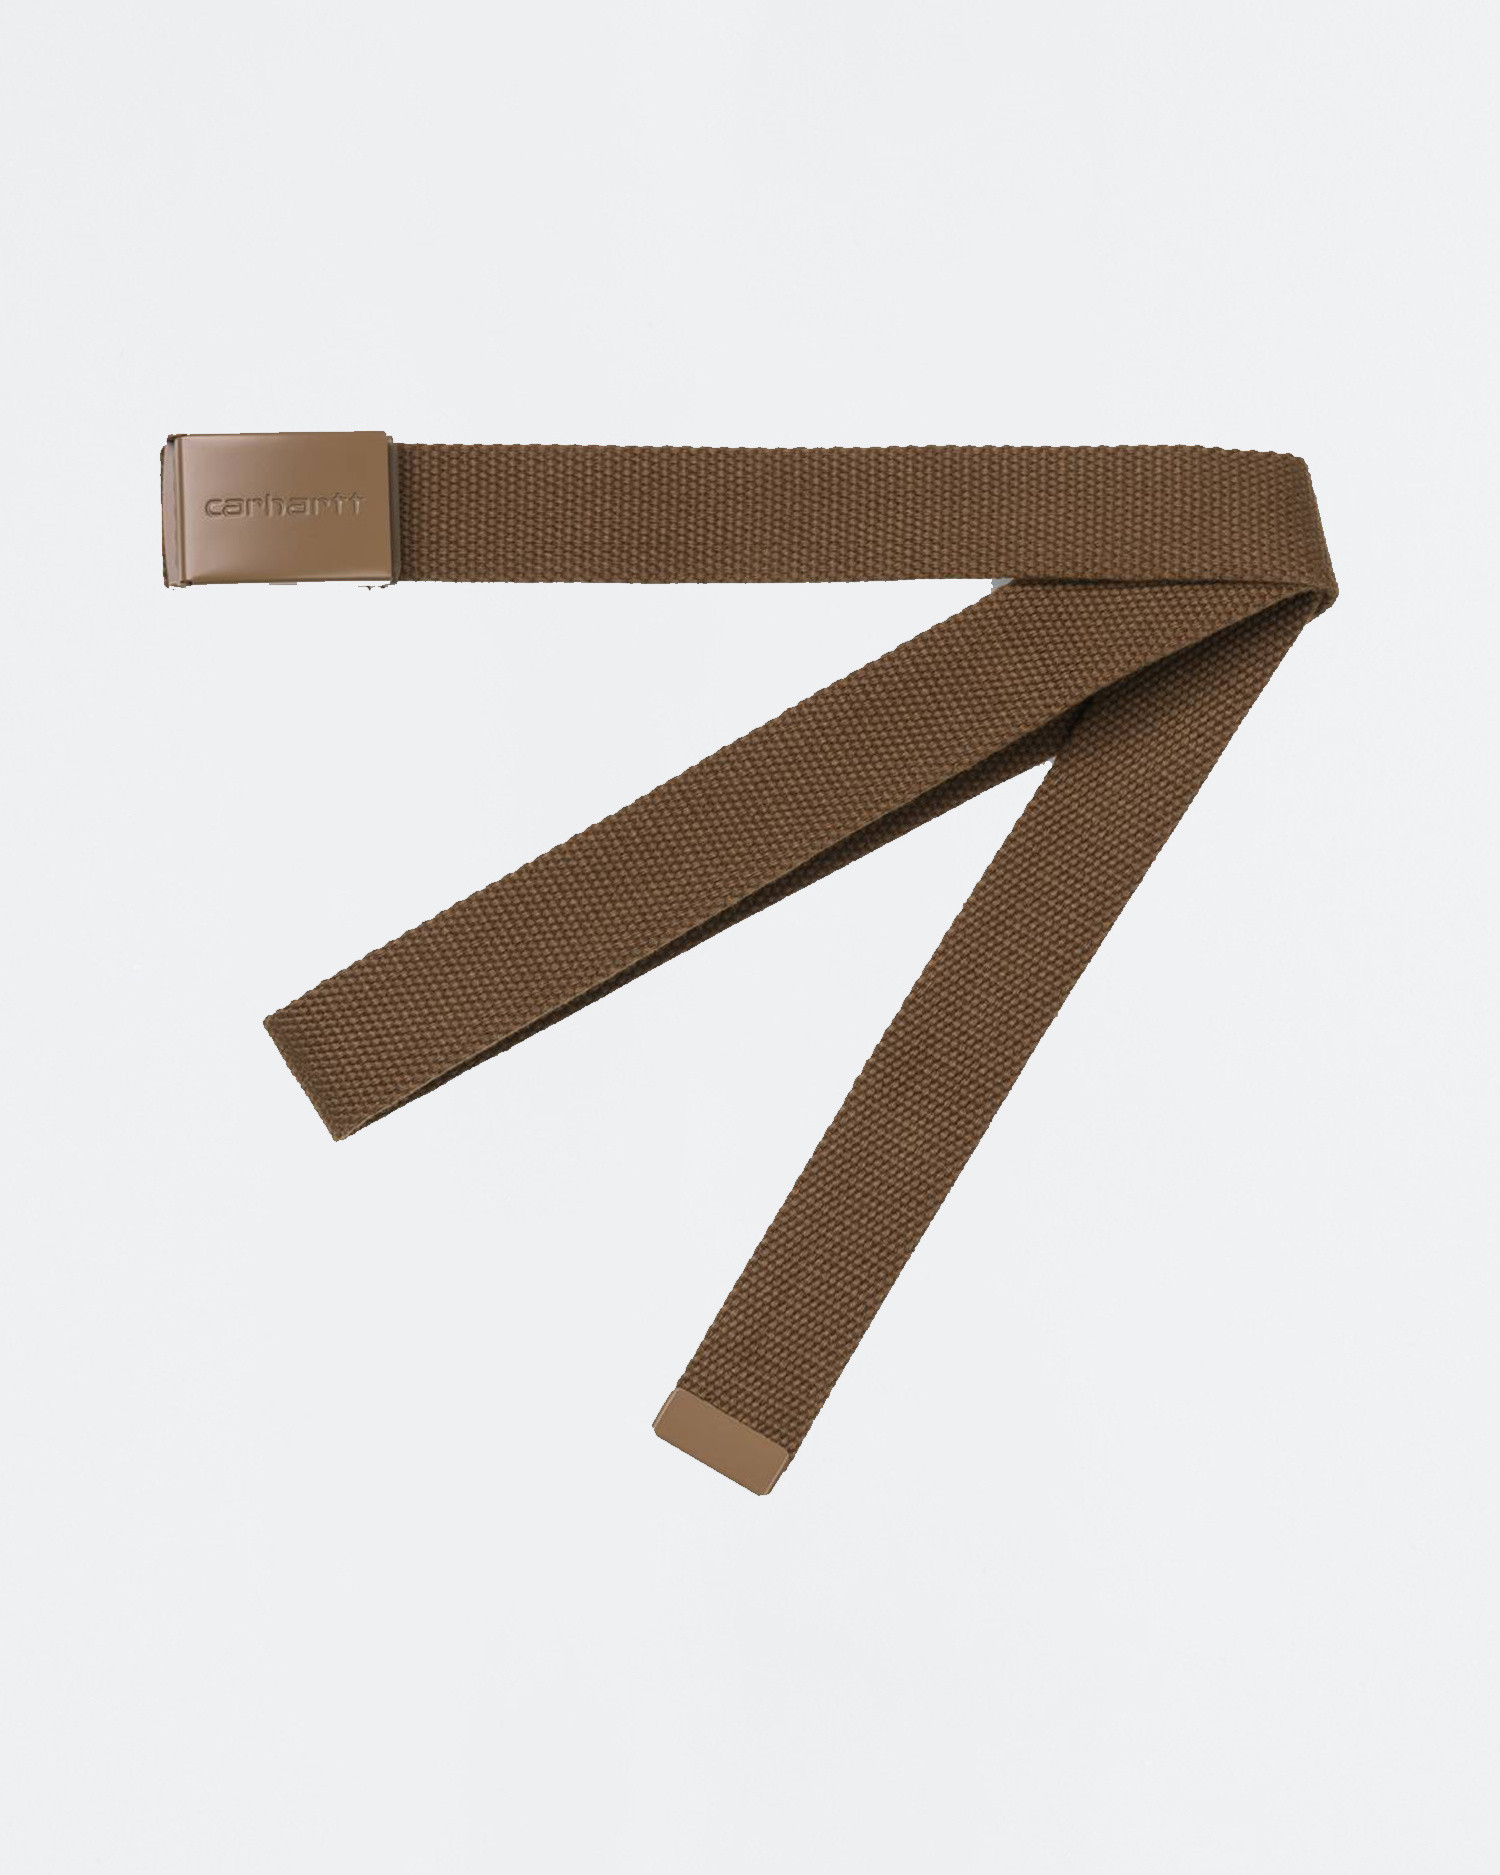 Carhartt Clip Belt Hamilton Brown